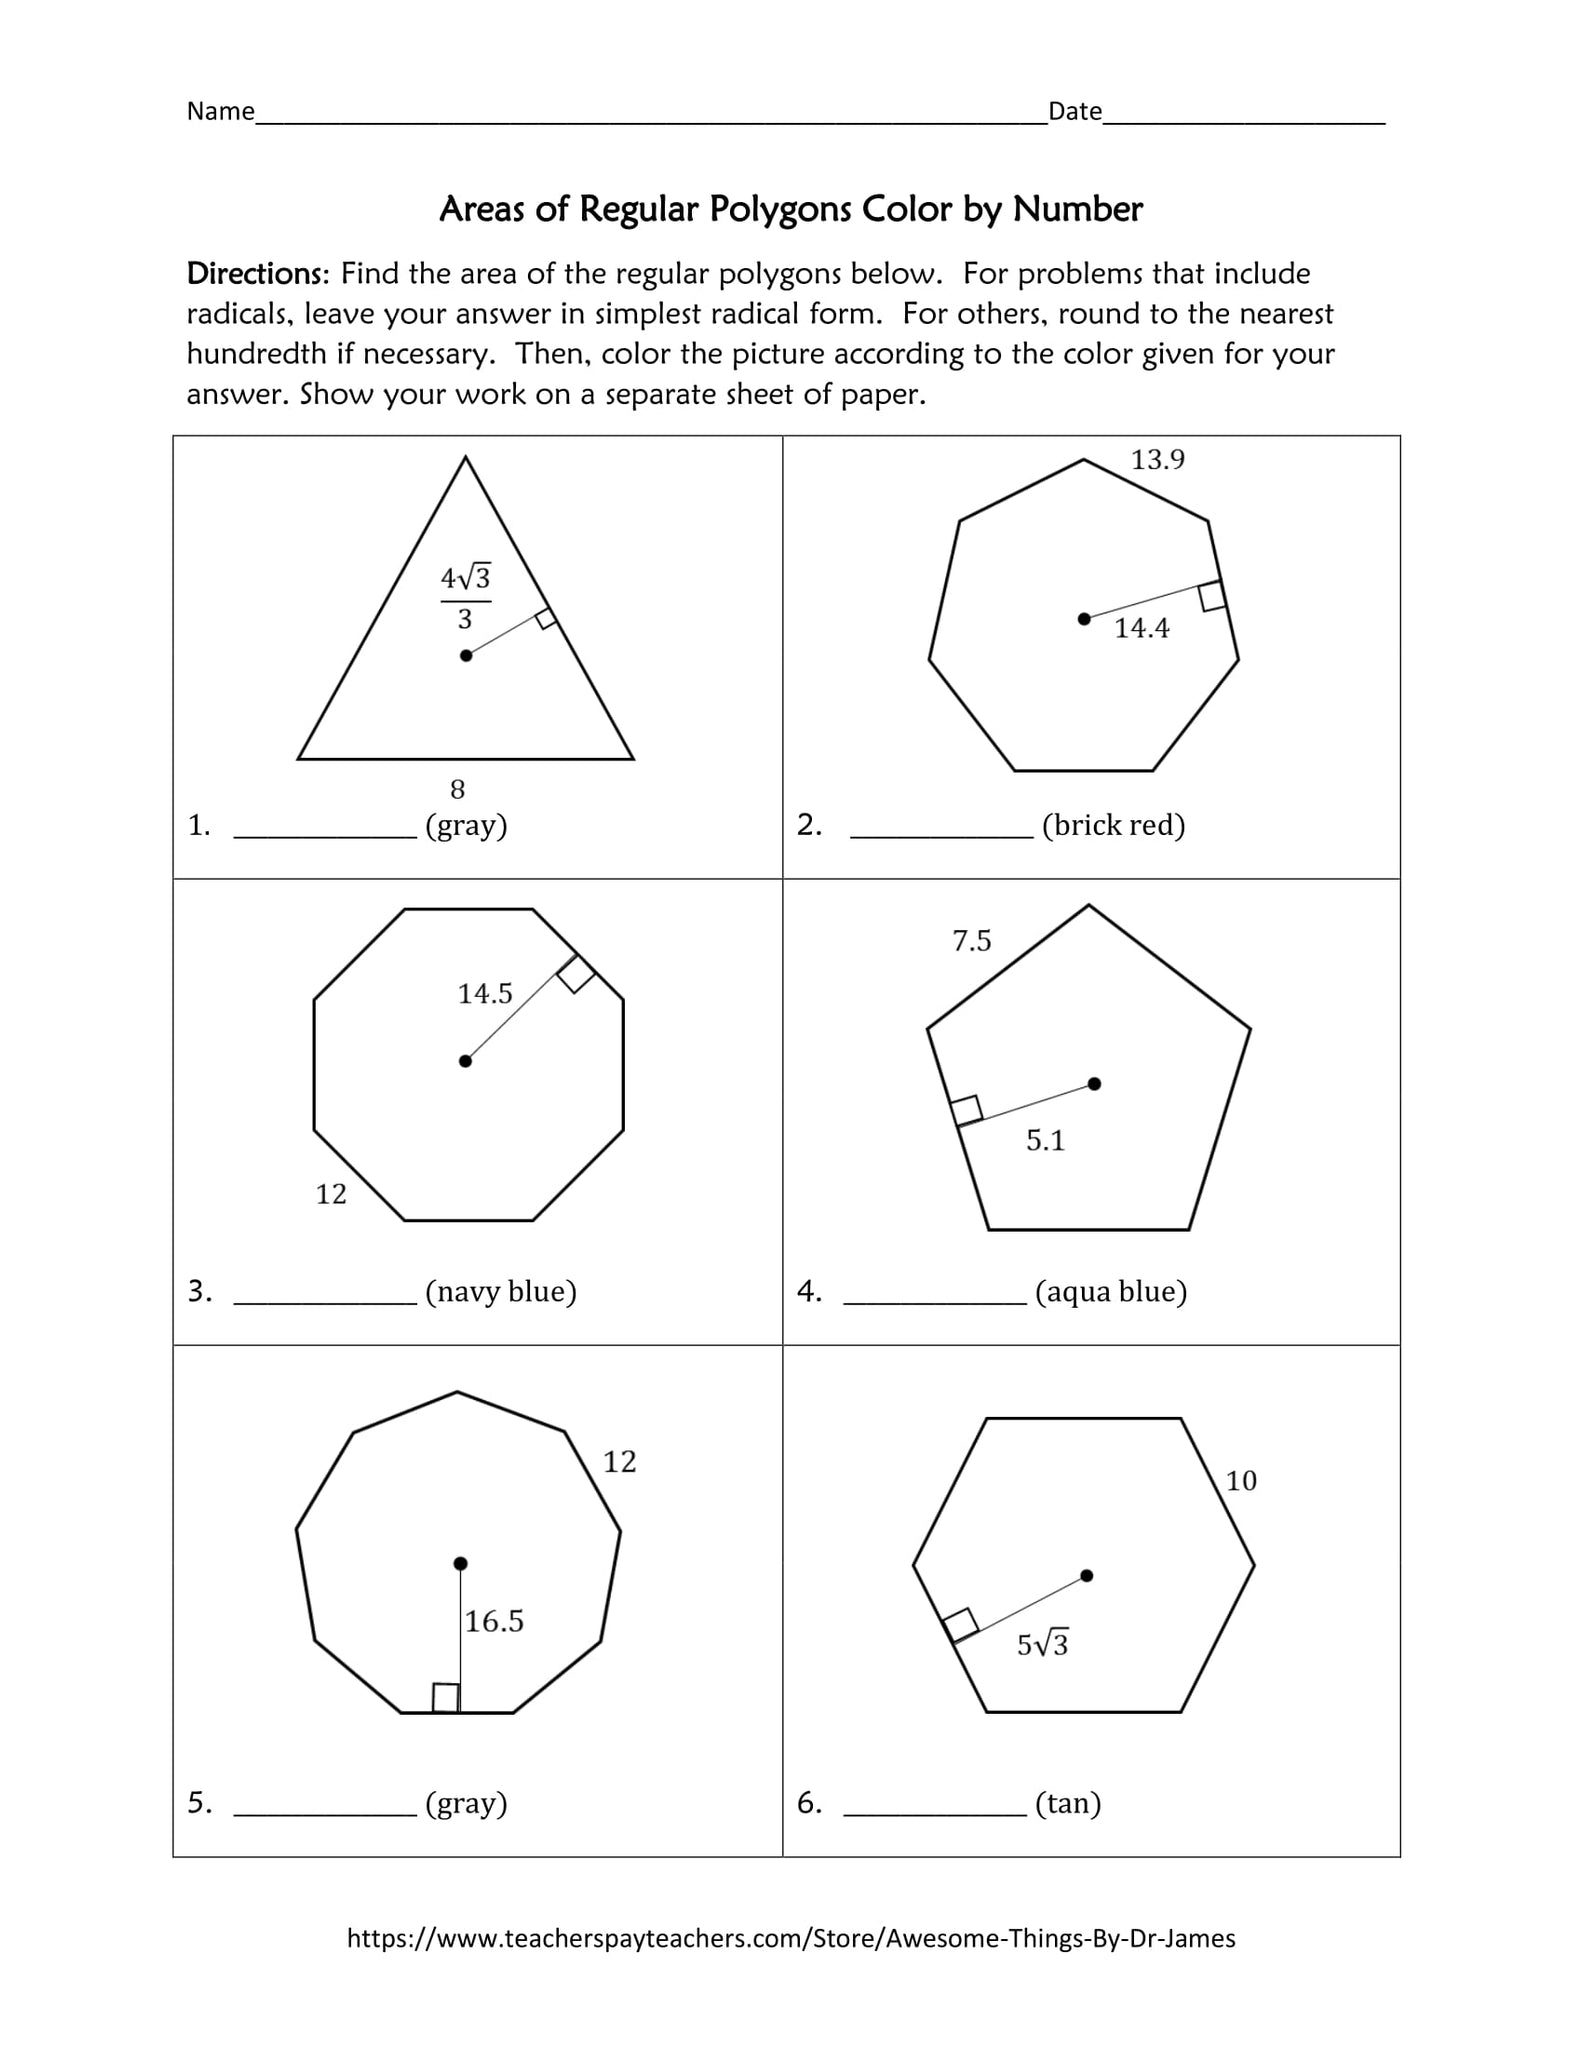 Worksheets Areas Of Regular Polygons Worksheet areas of regular polygons color by number funrithmetic